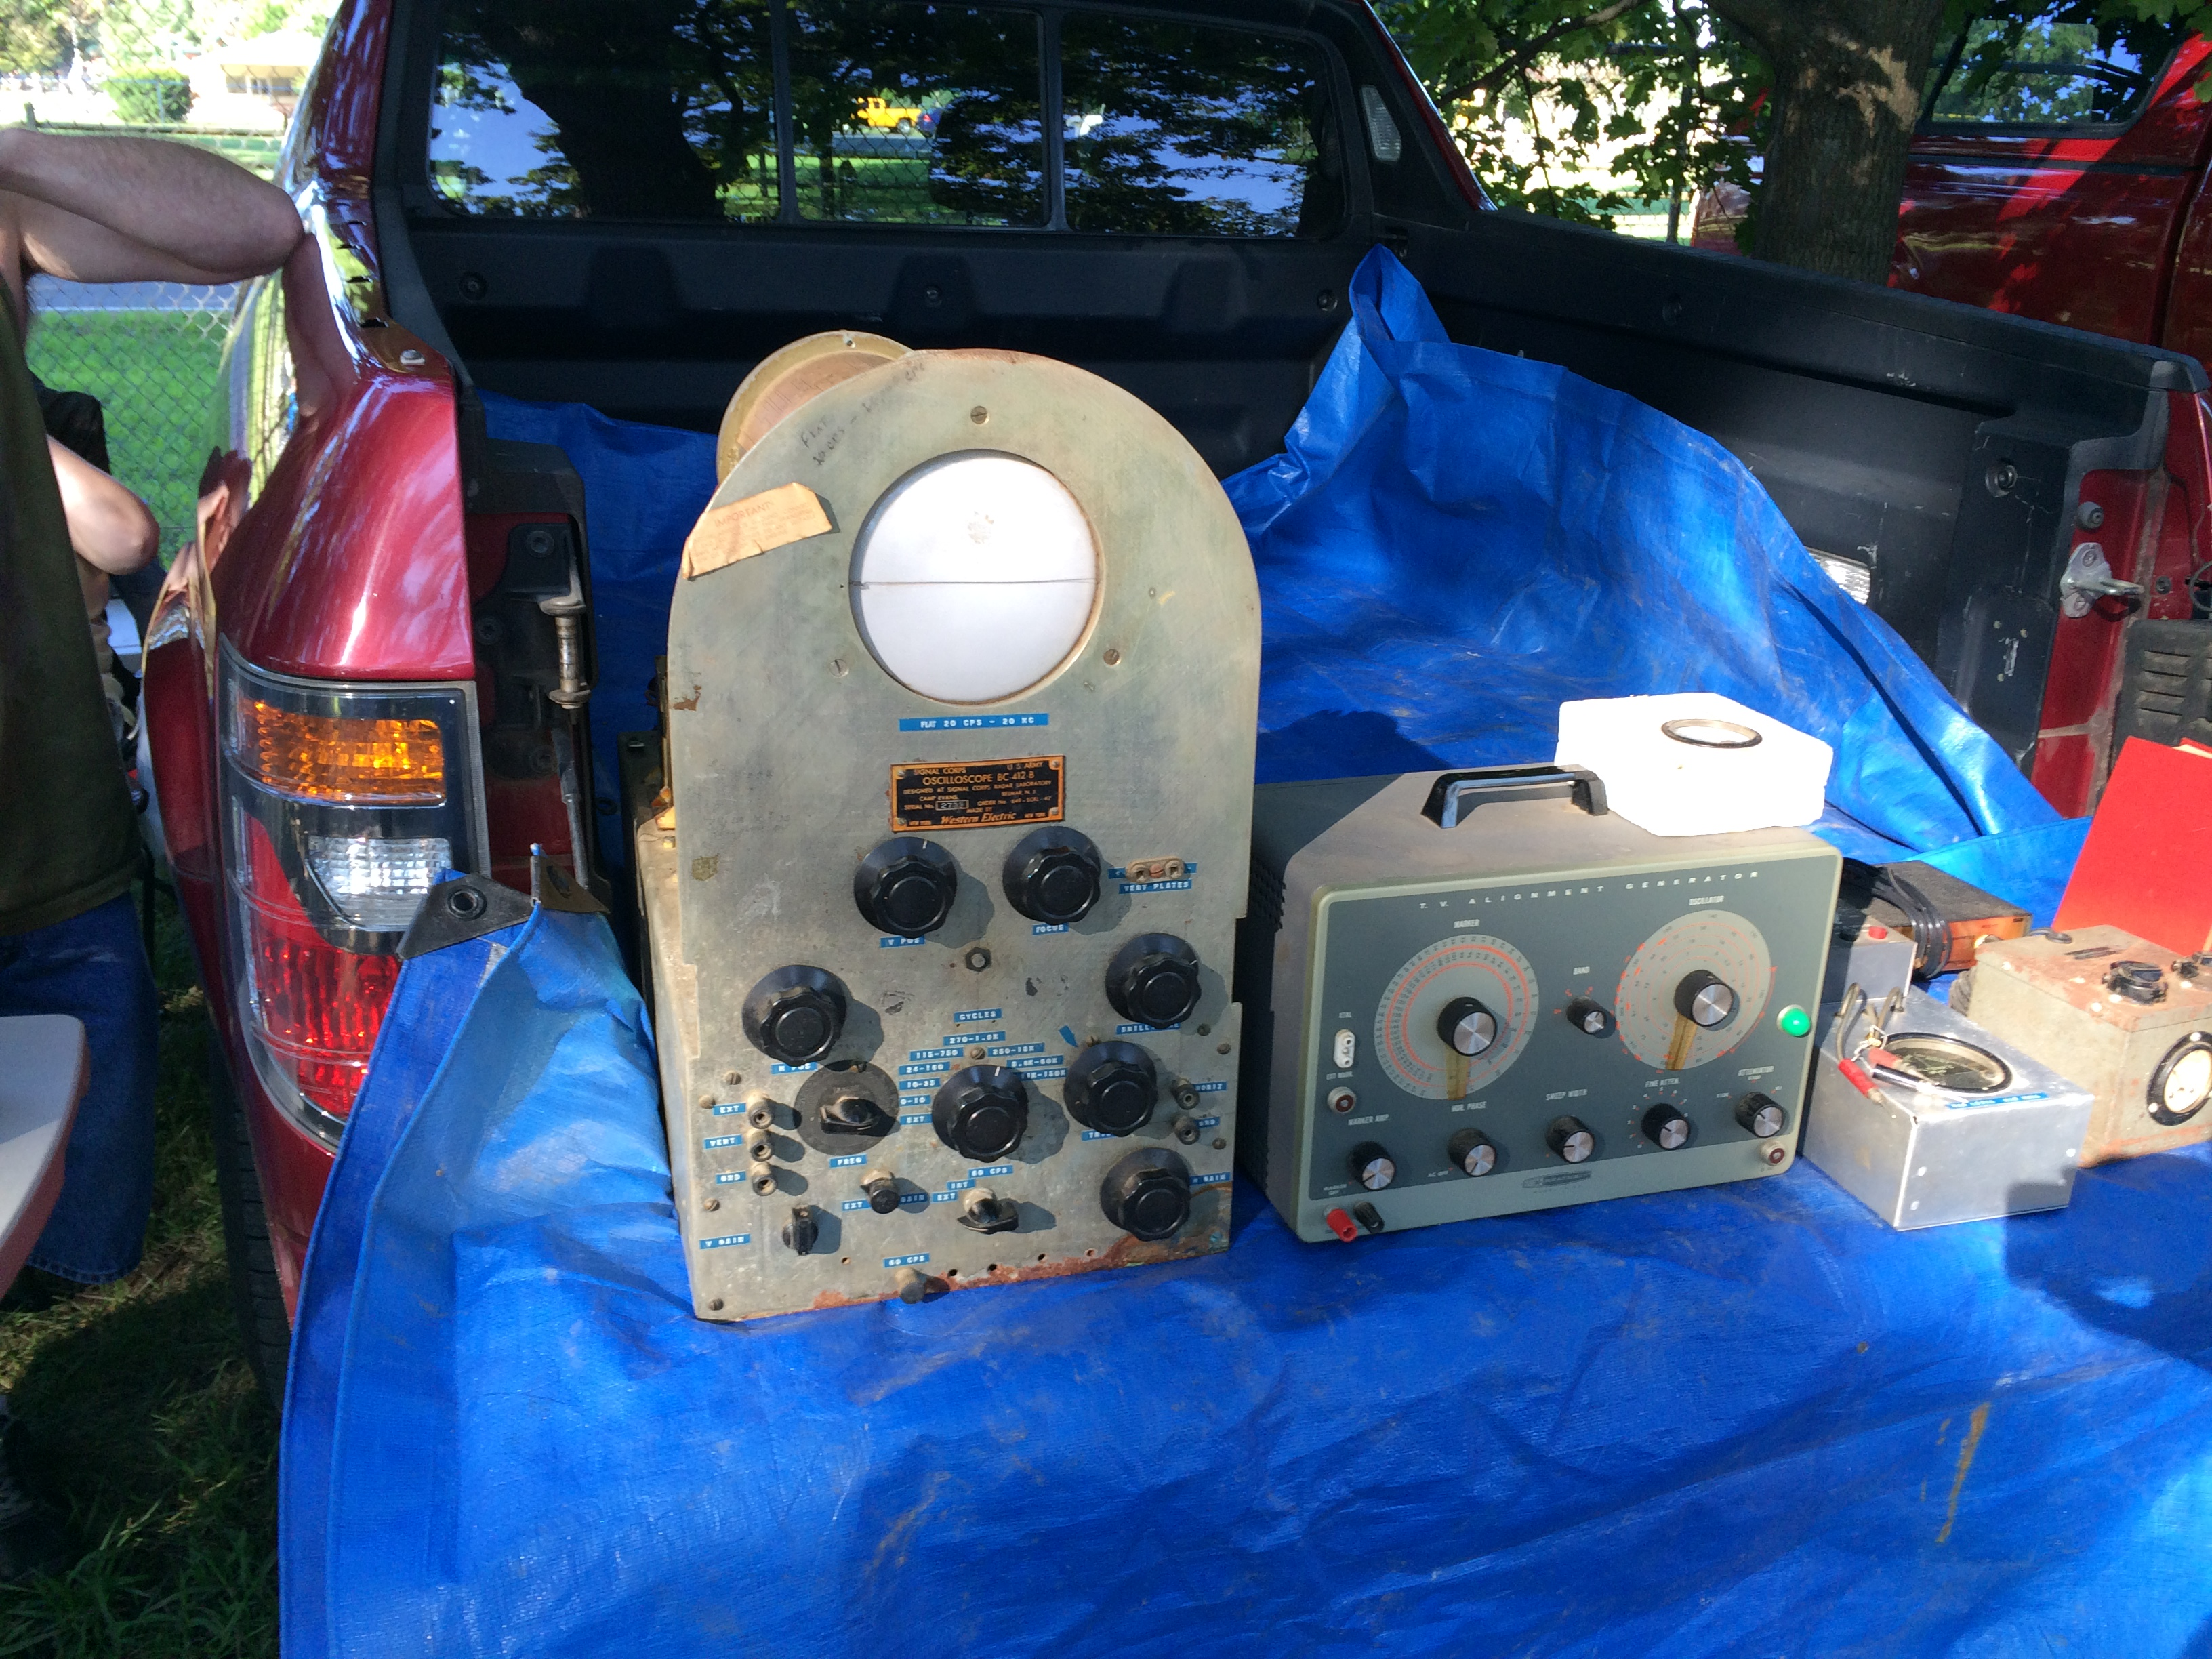 G503 Military Vehicle Message Forums O View Topic Rewiring My A1